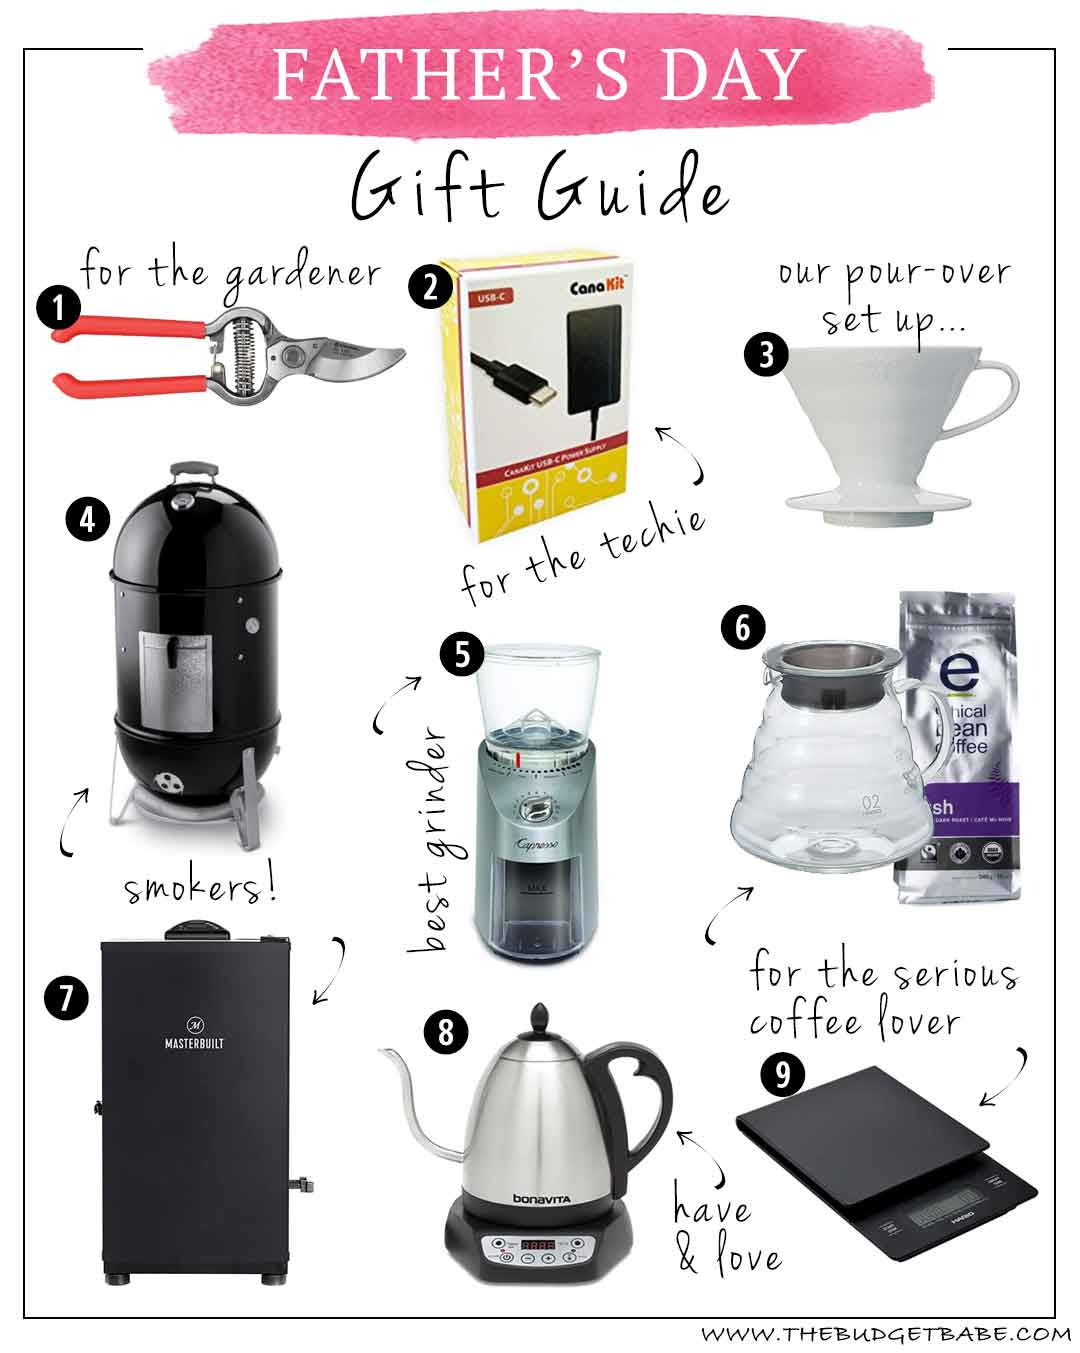 Father's Day gift guide 2020 unique gifts he'll love| The Budget Babe blog | Amazon, Walmart, Target and more